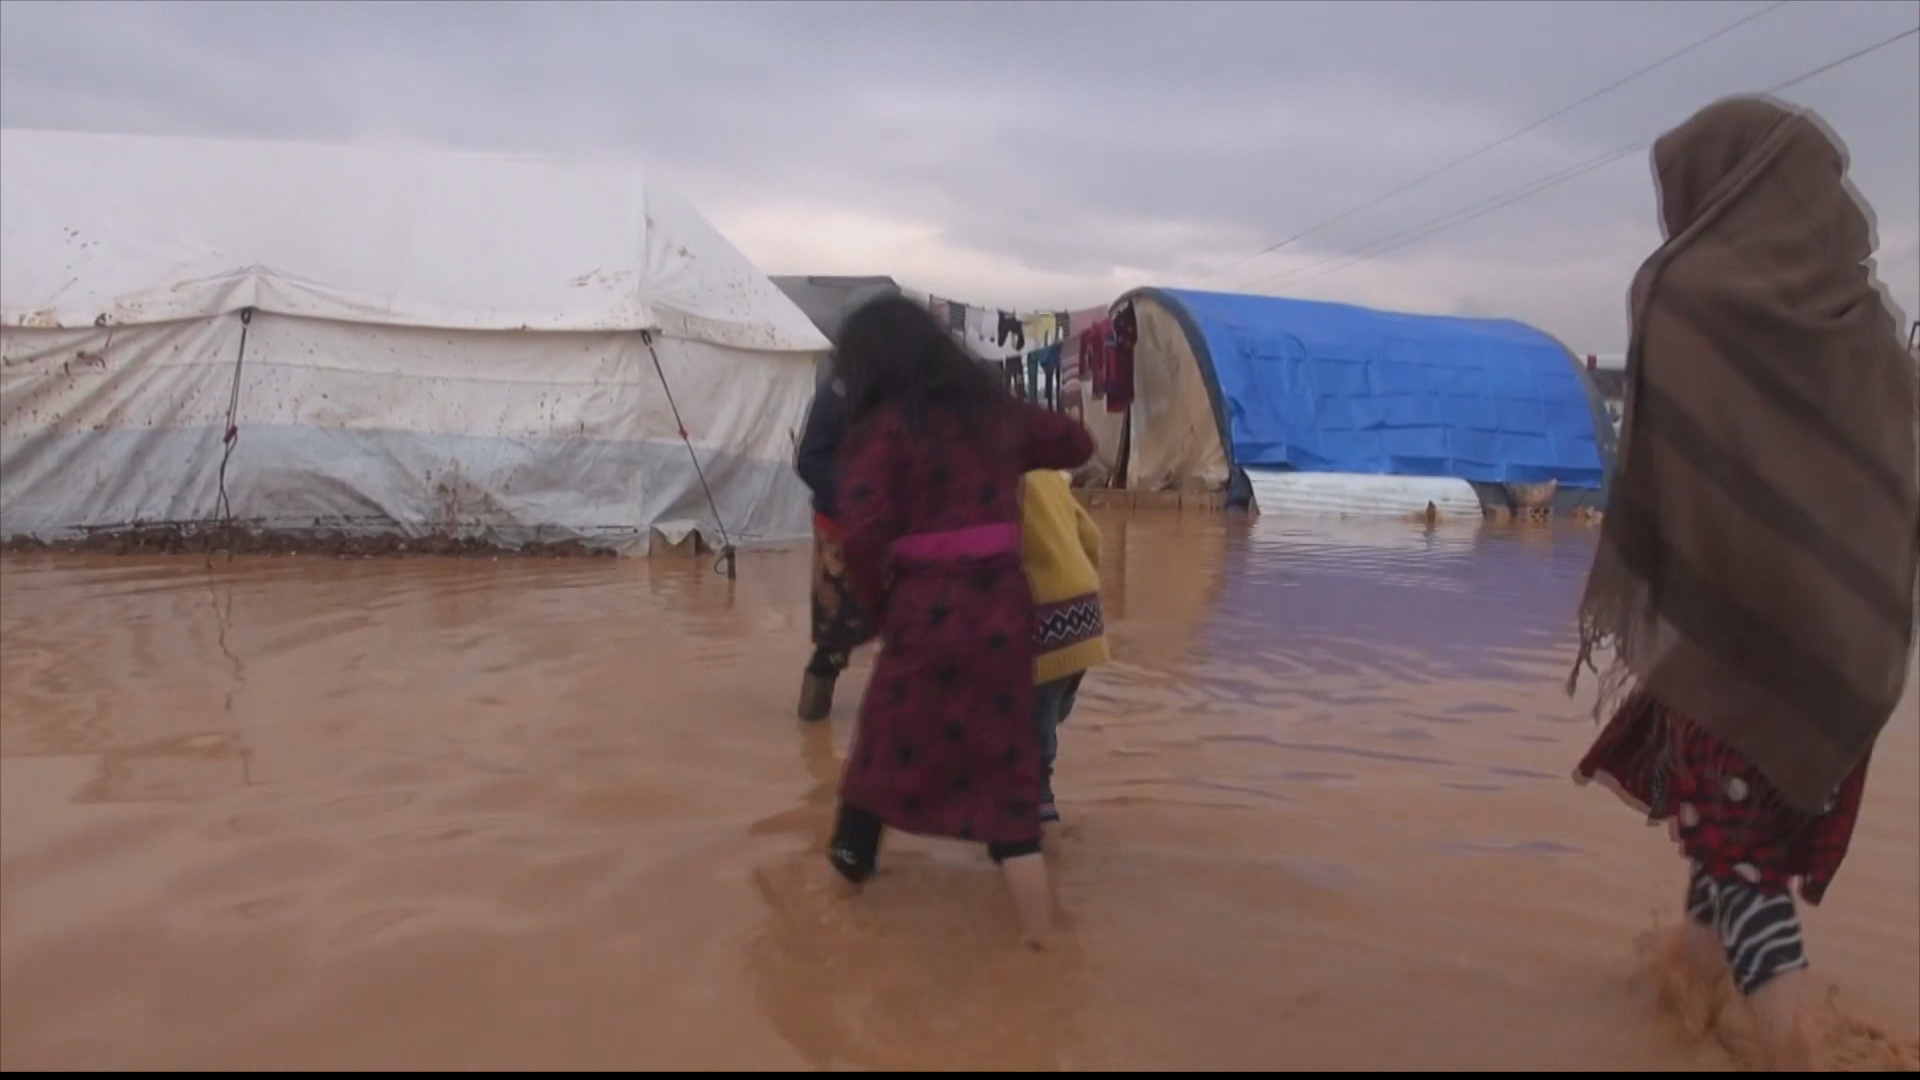 Displaced Syrians appeal for international aid after floods